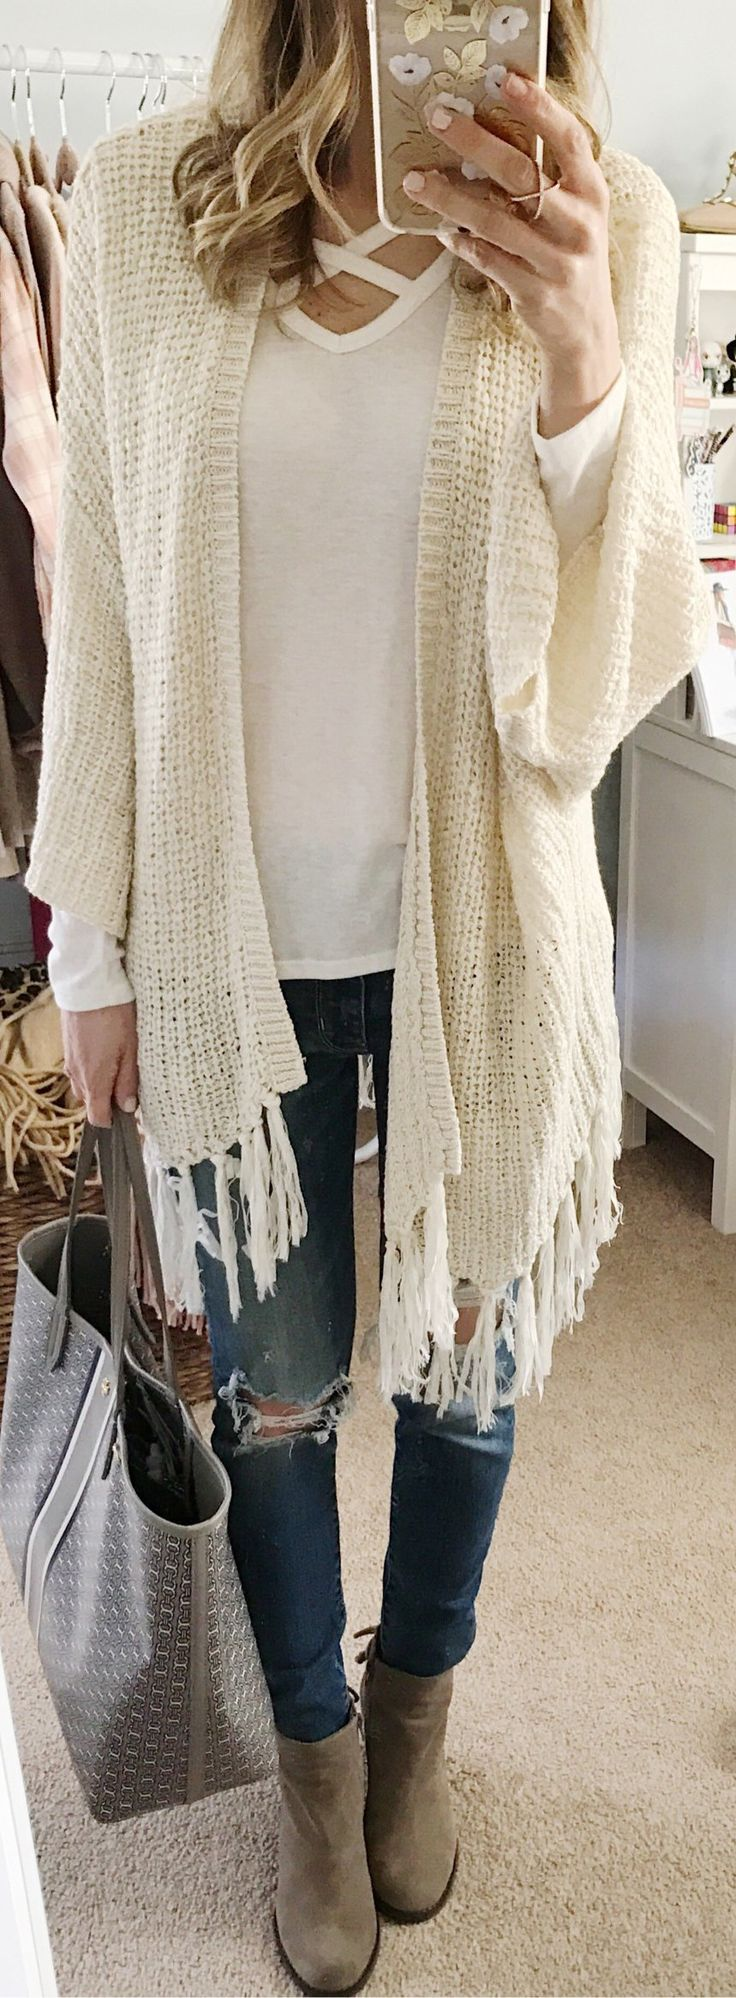 White Fringe Cardigan / White Tee / Ripped Skinny Jeans / Grey Suede Booties